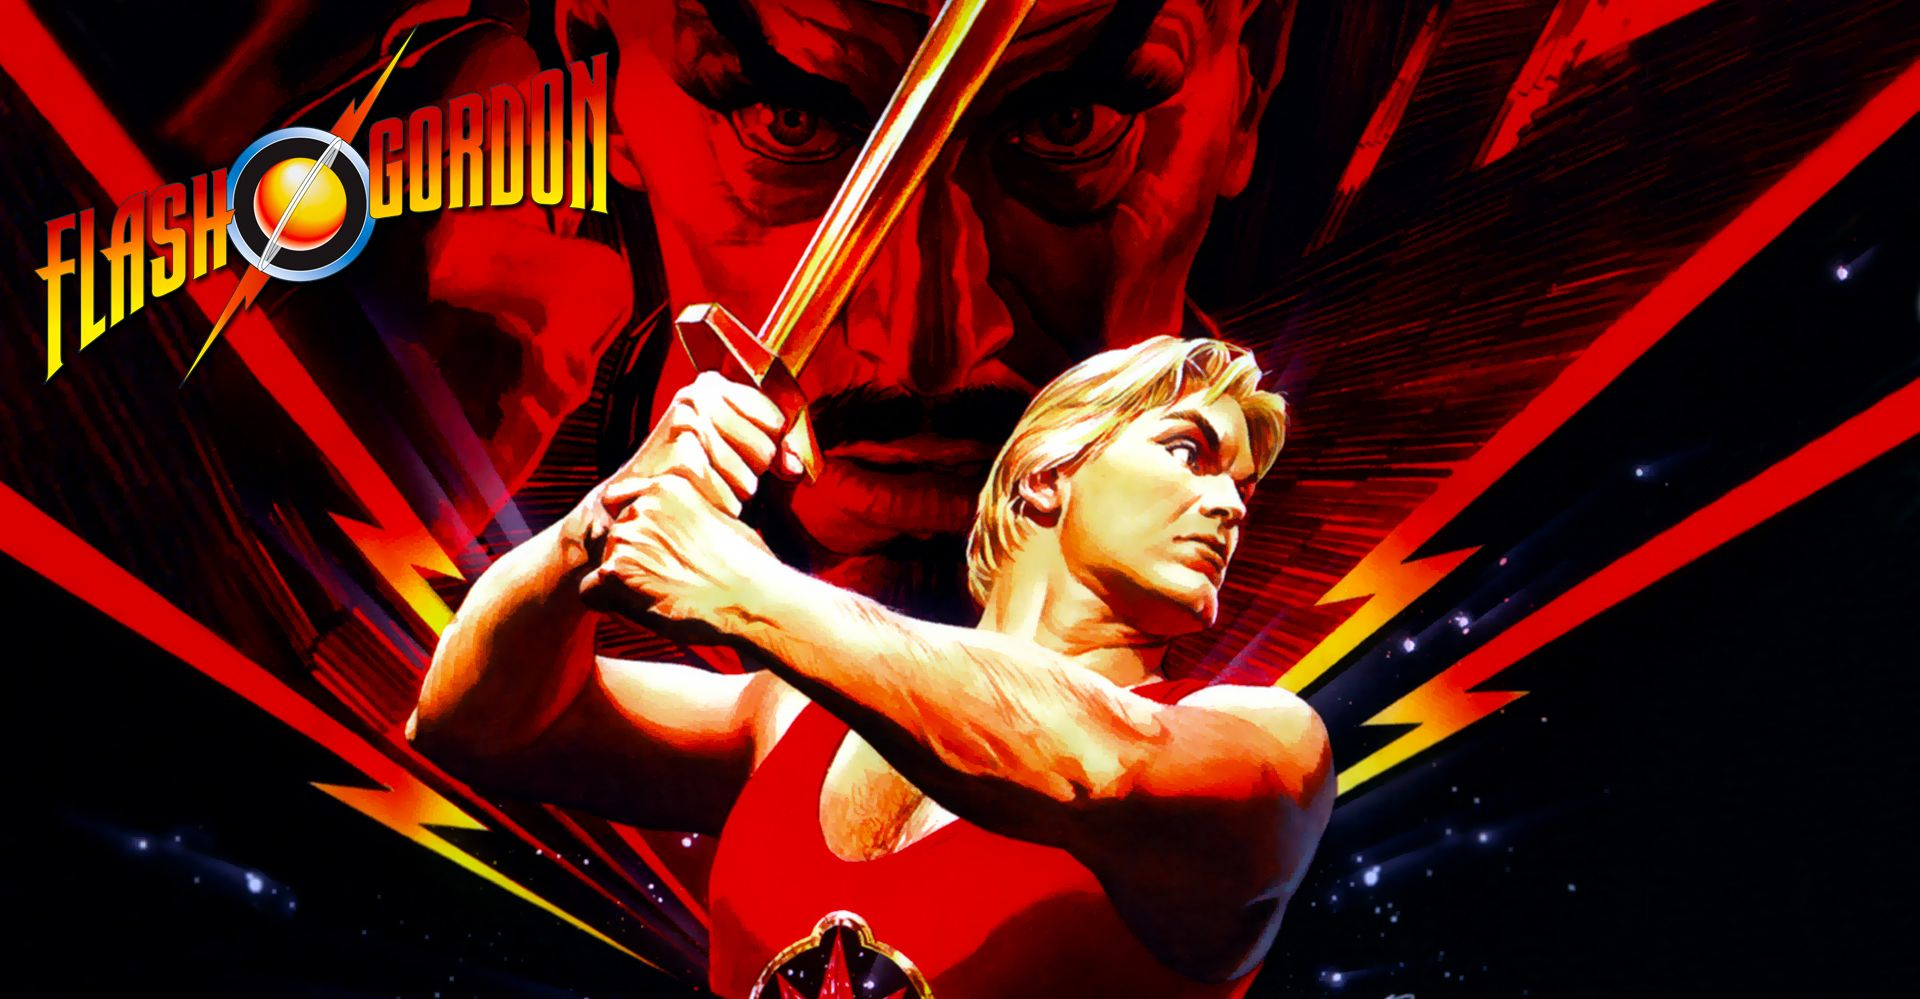 flash-gordon-gorsel